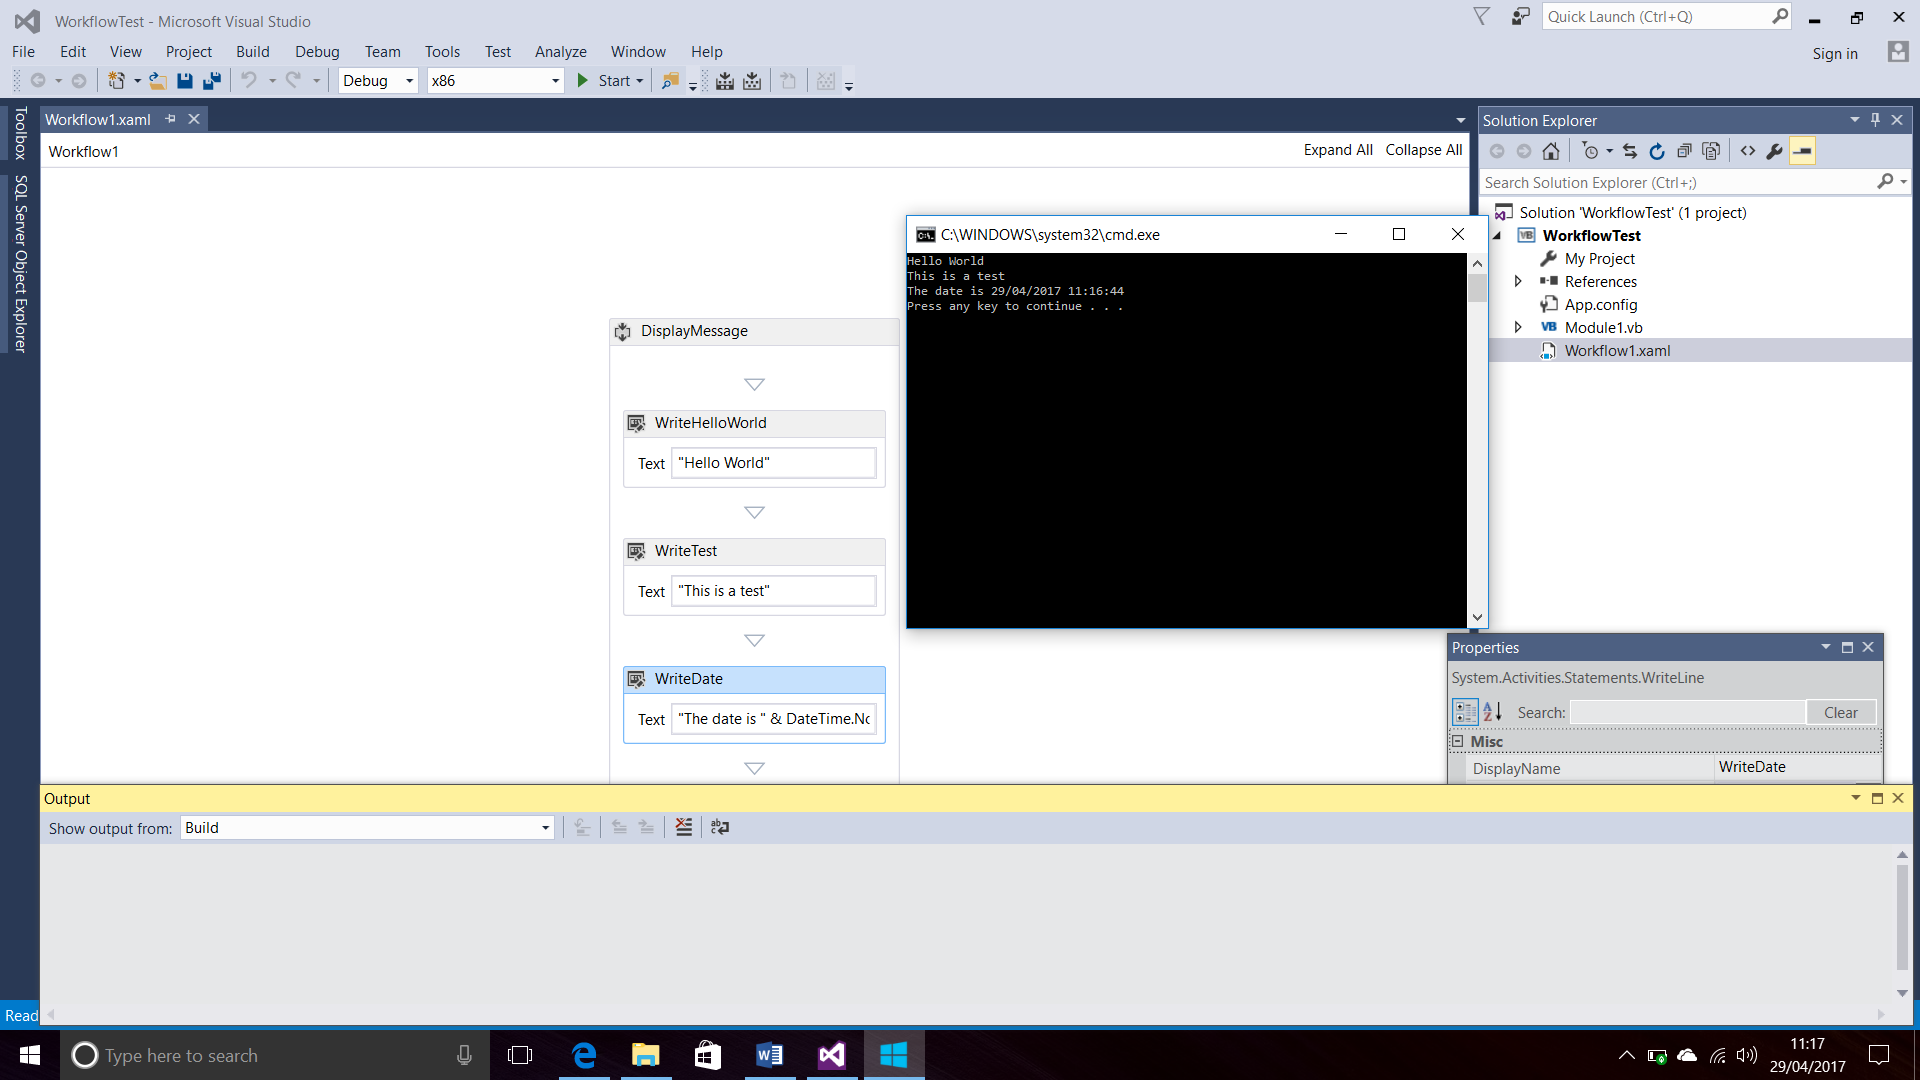 screenshot of workflow and the console window in visual studio 2015